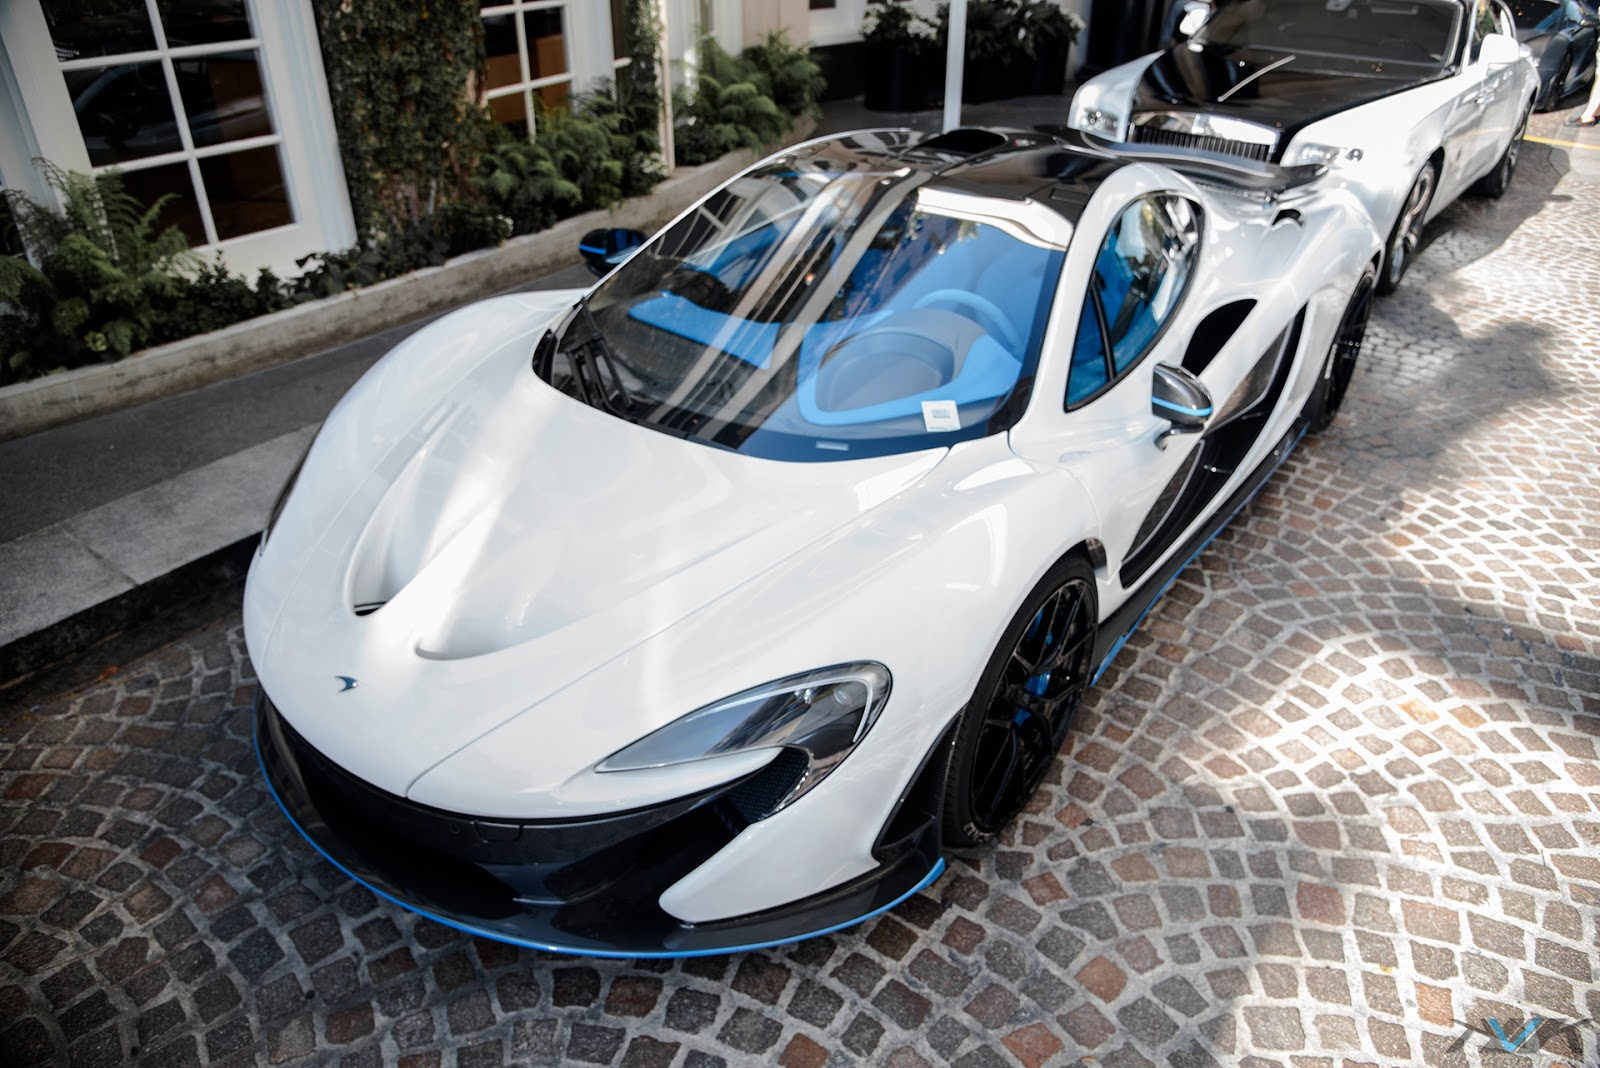 Mso Mclaren P1 Stuns On Pur Wheels In Los Angeles